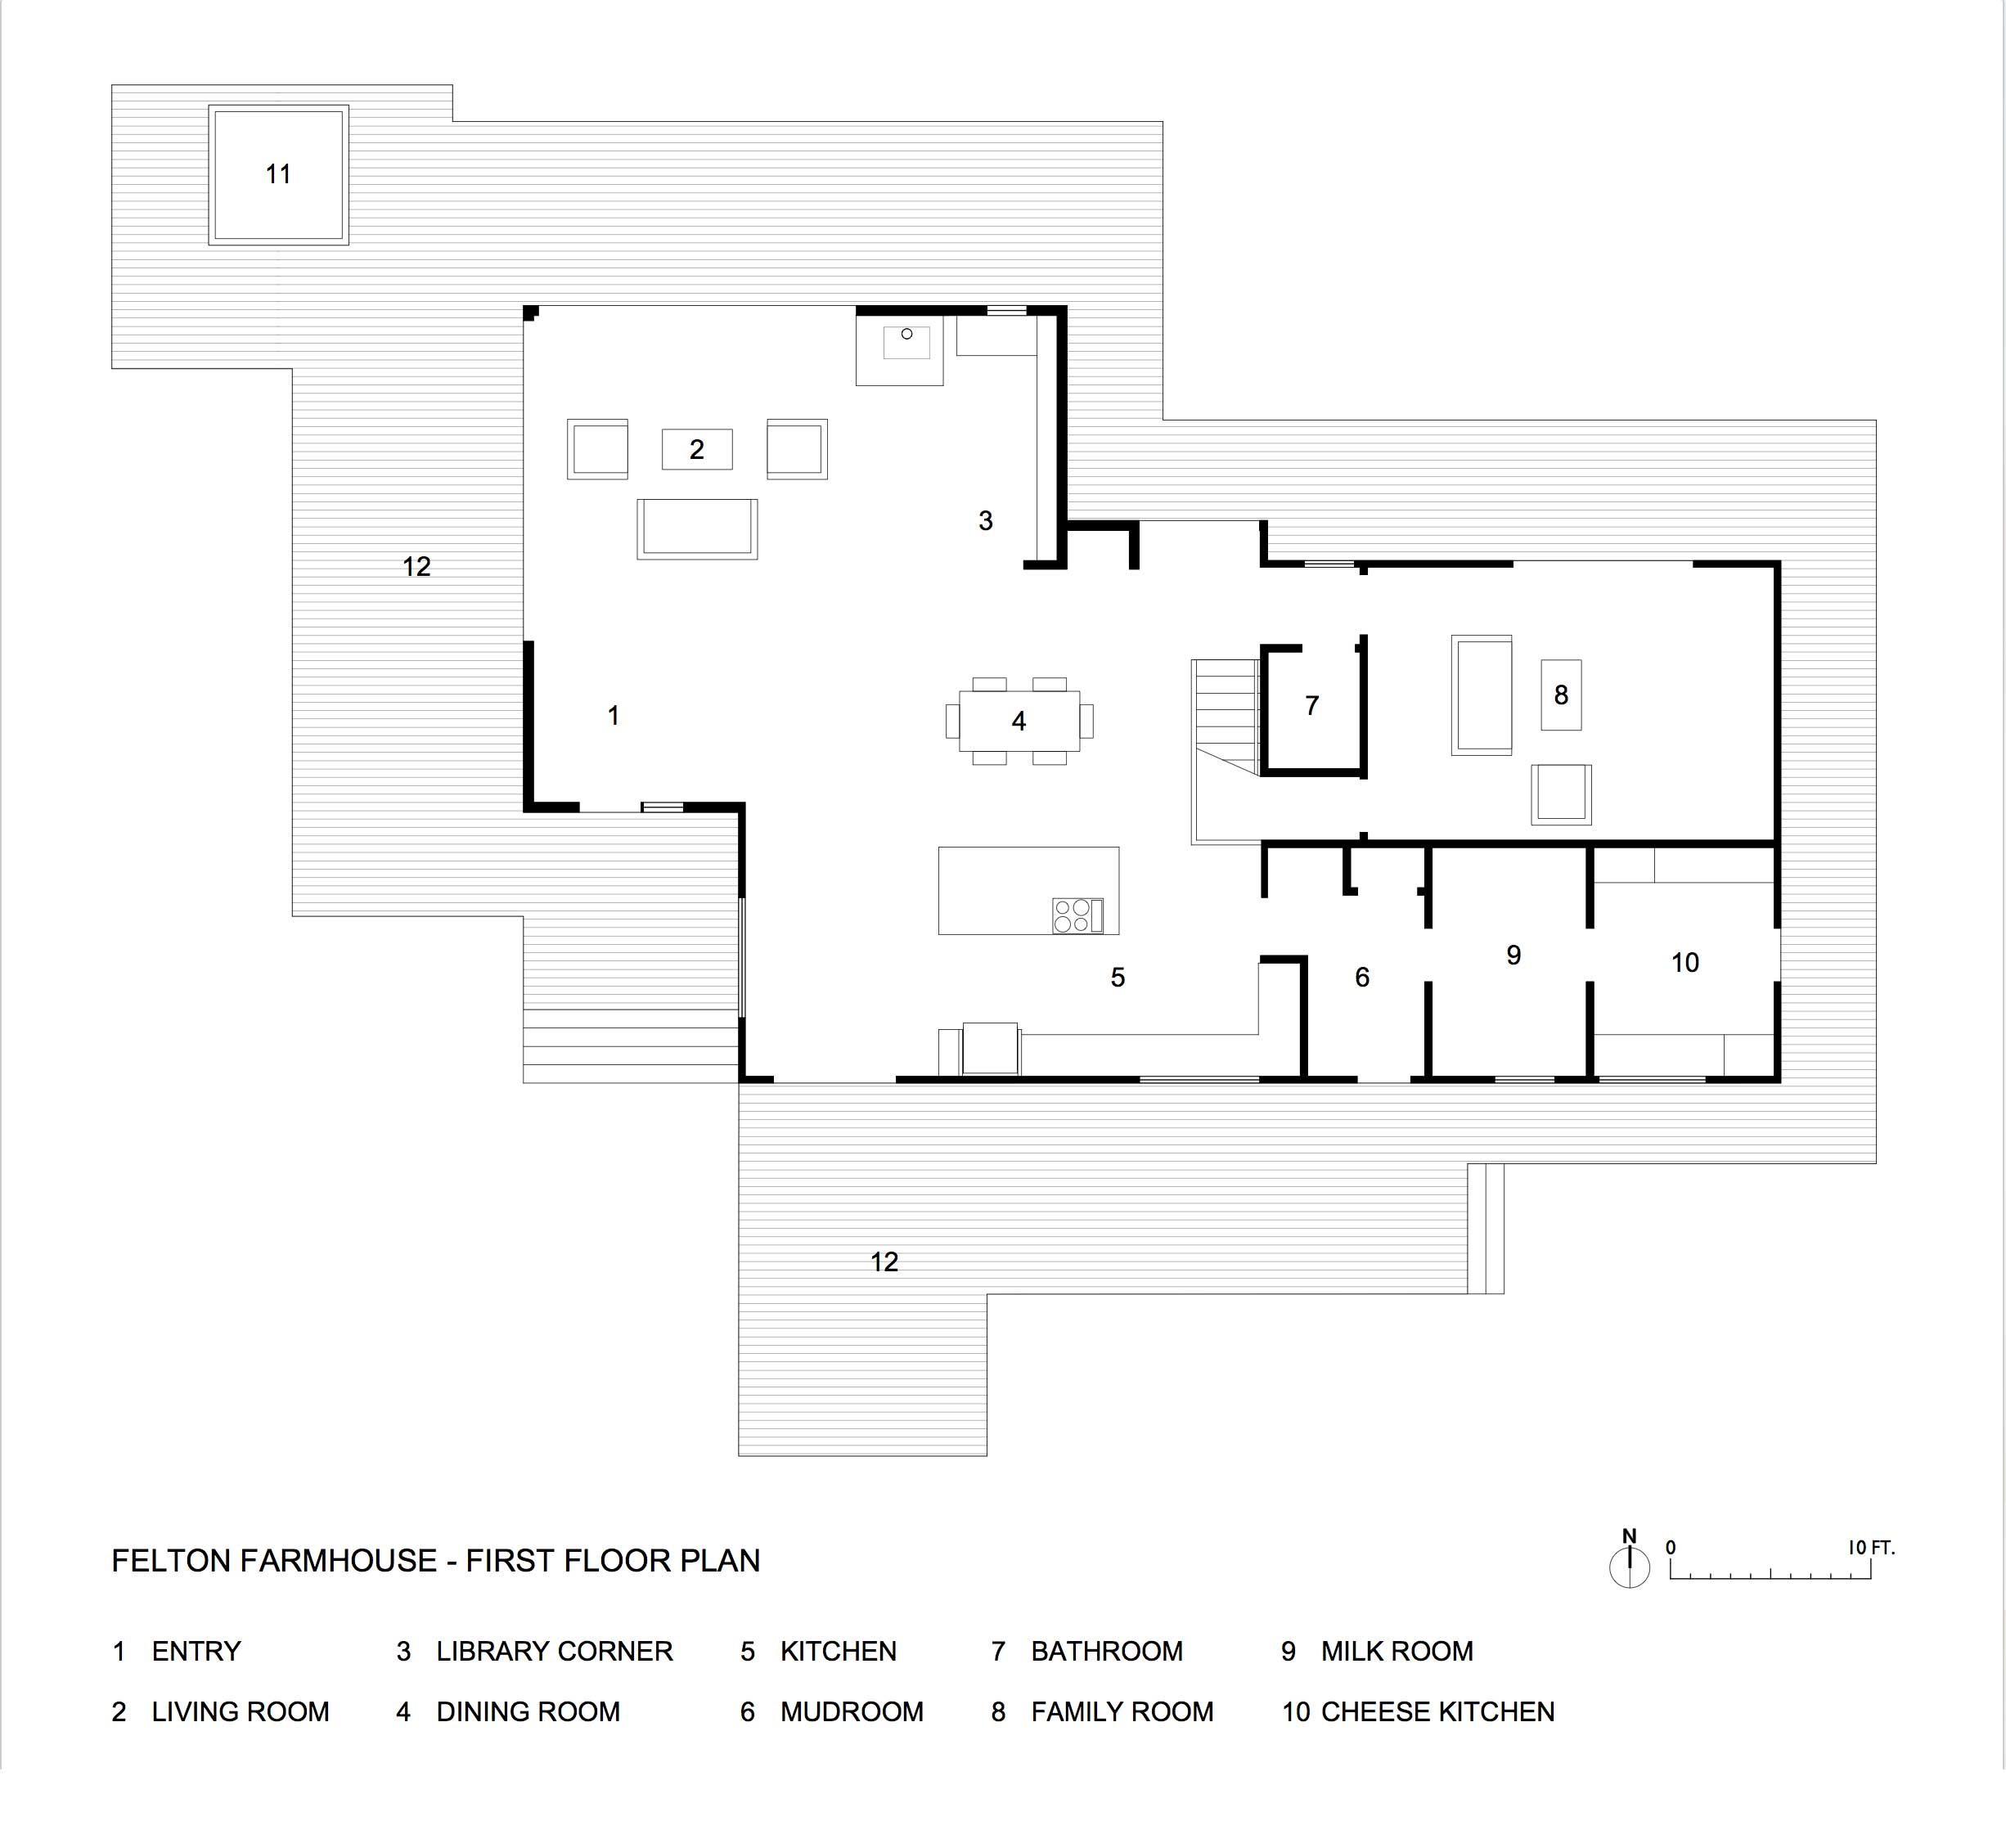 Felton-Farmhouse-First-Floor.jpg